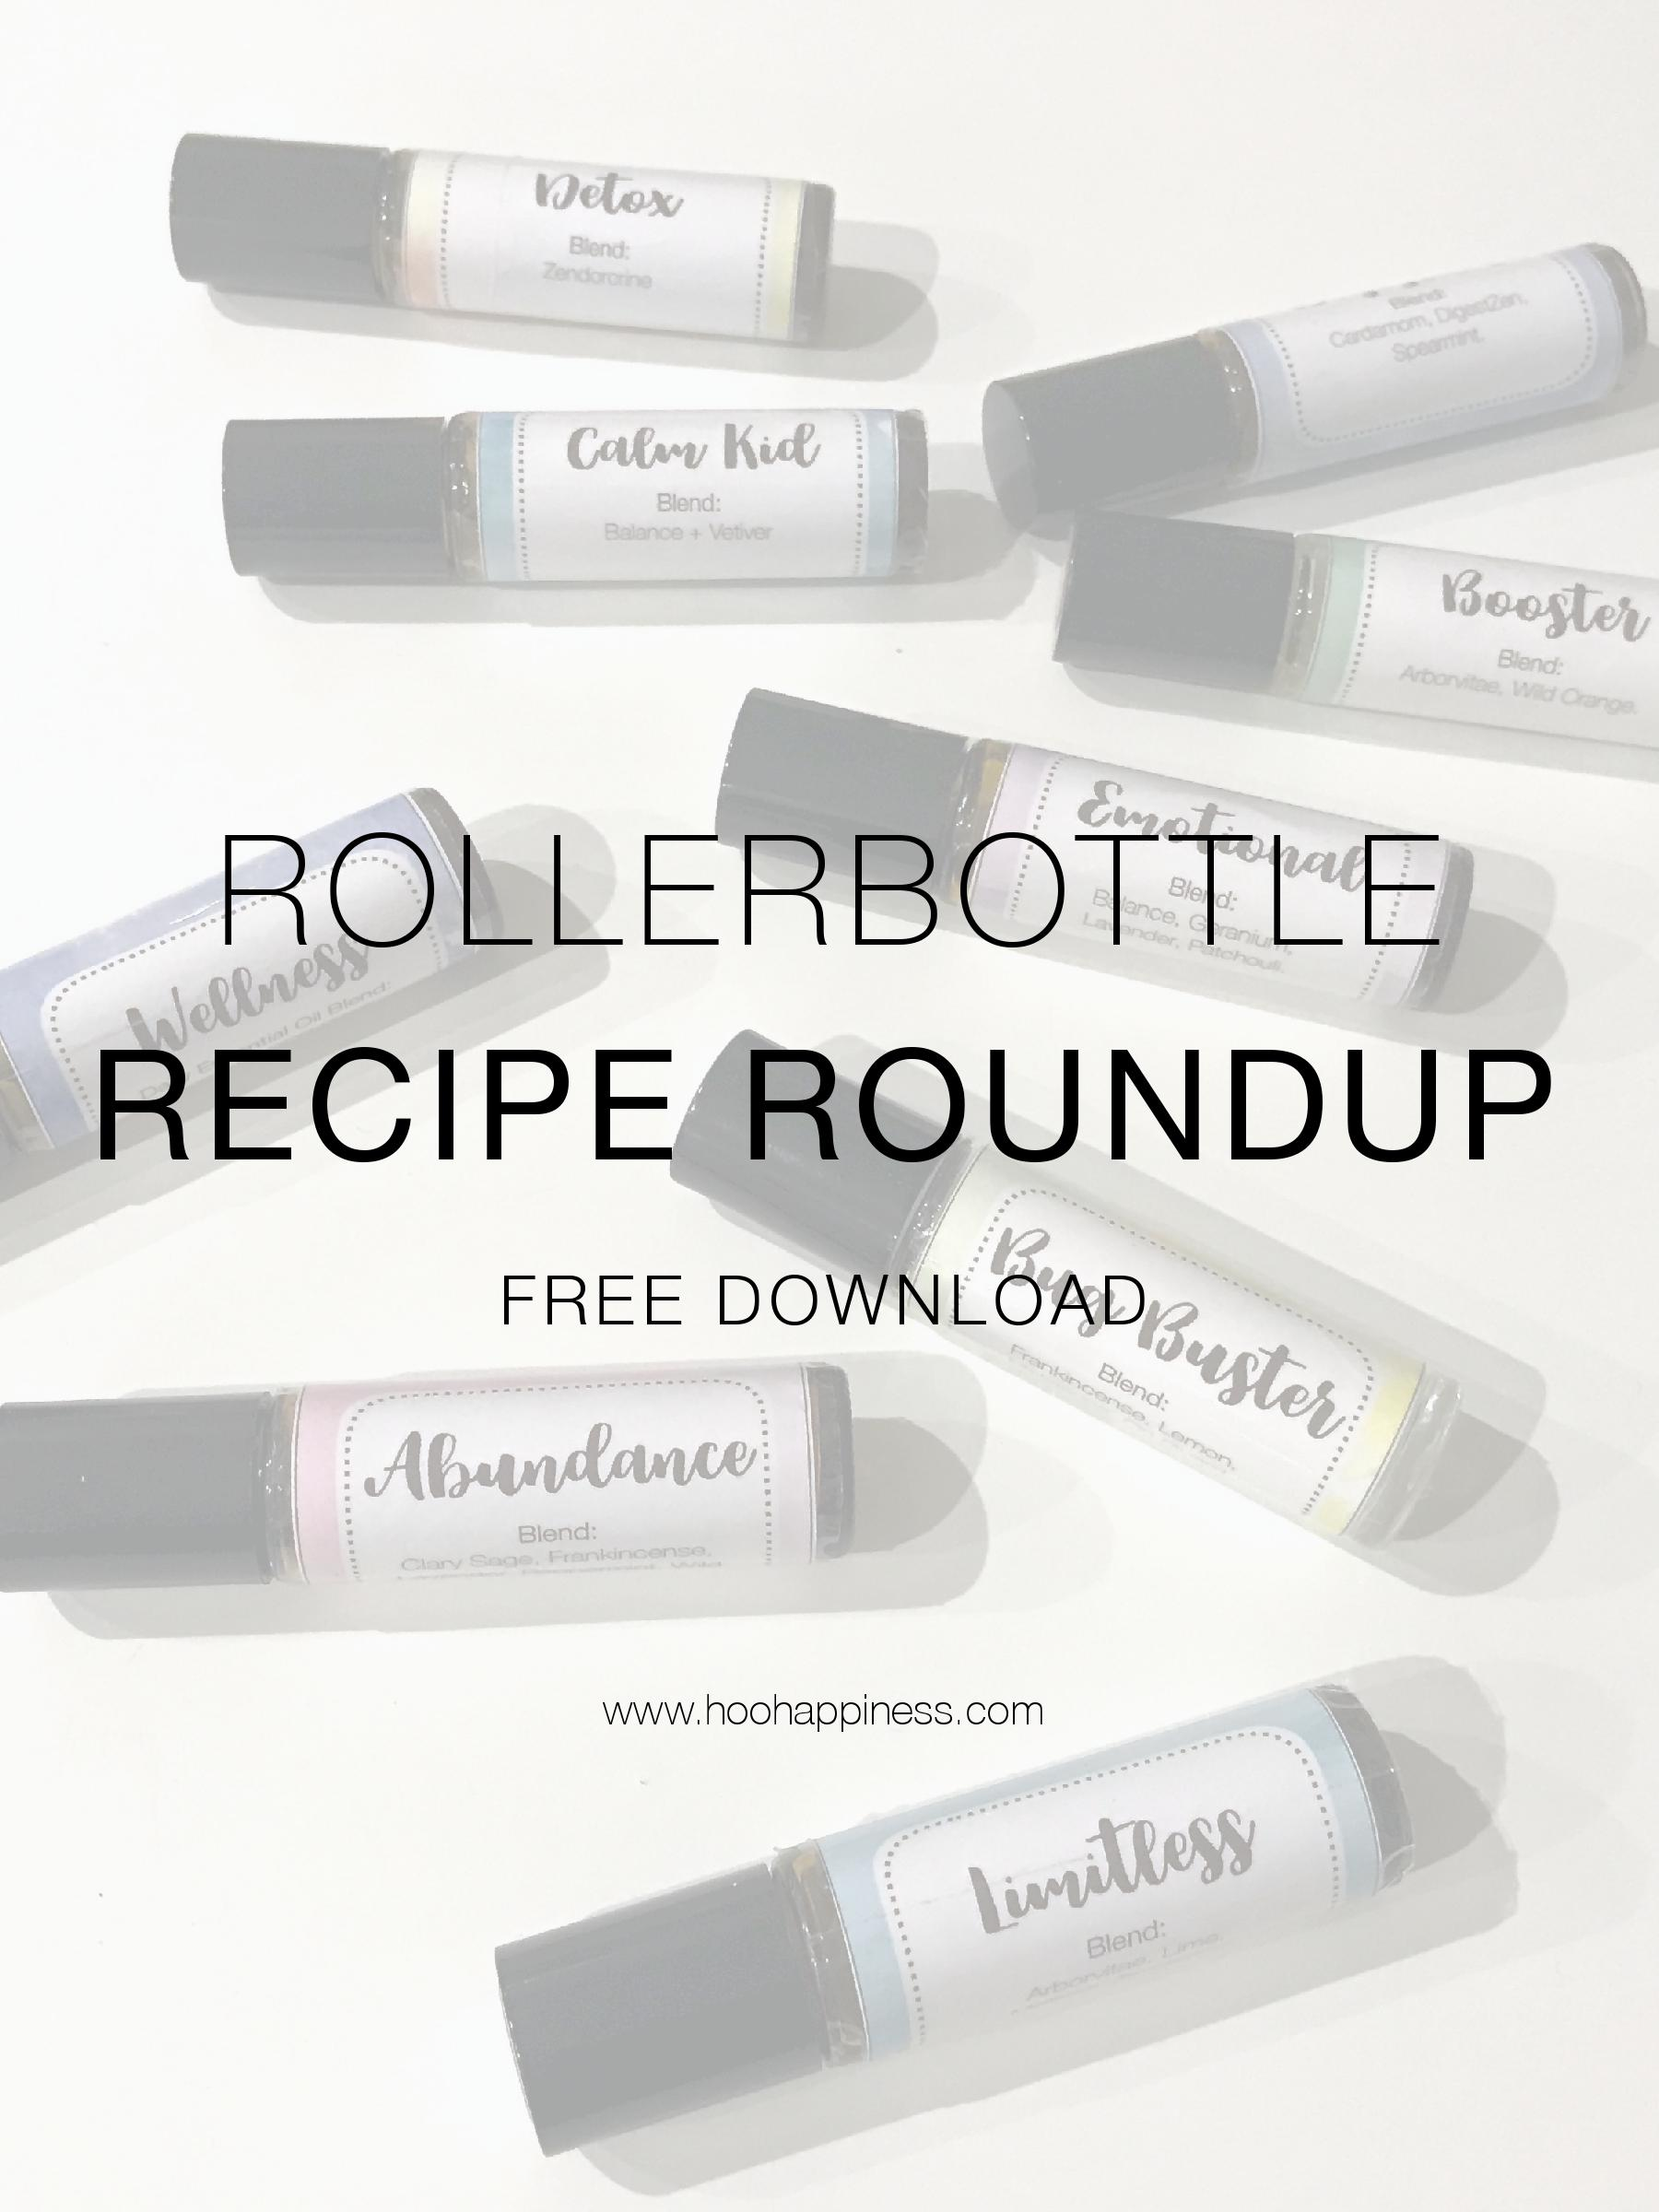 Rollerbottle Recipe Roundup (Free Download)